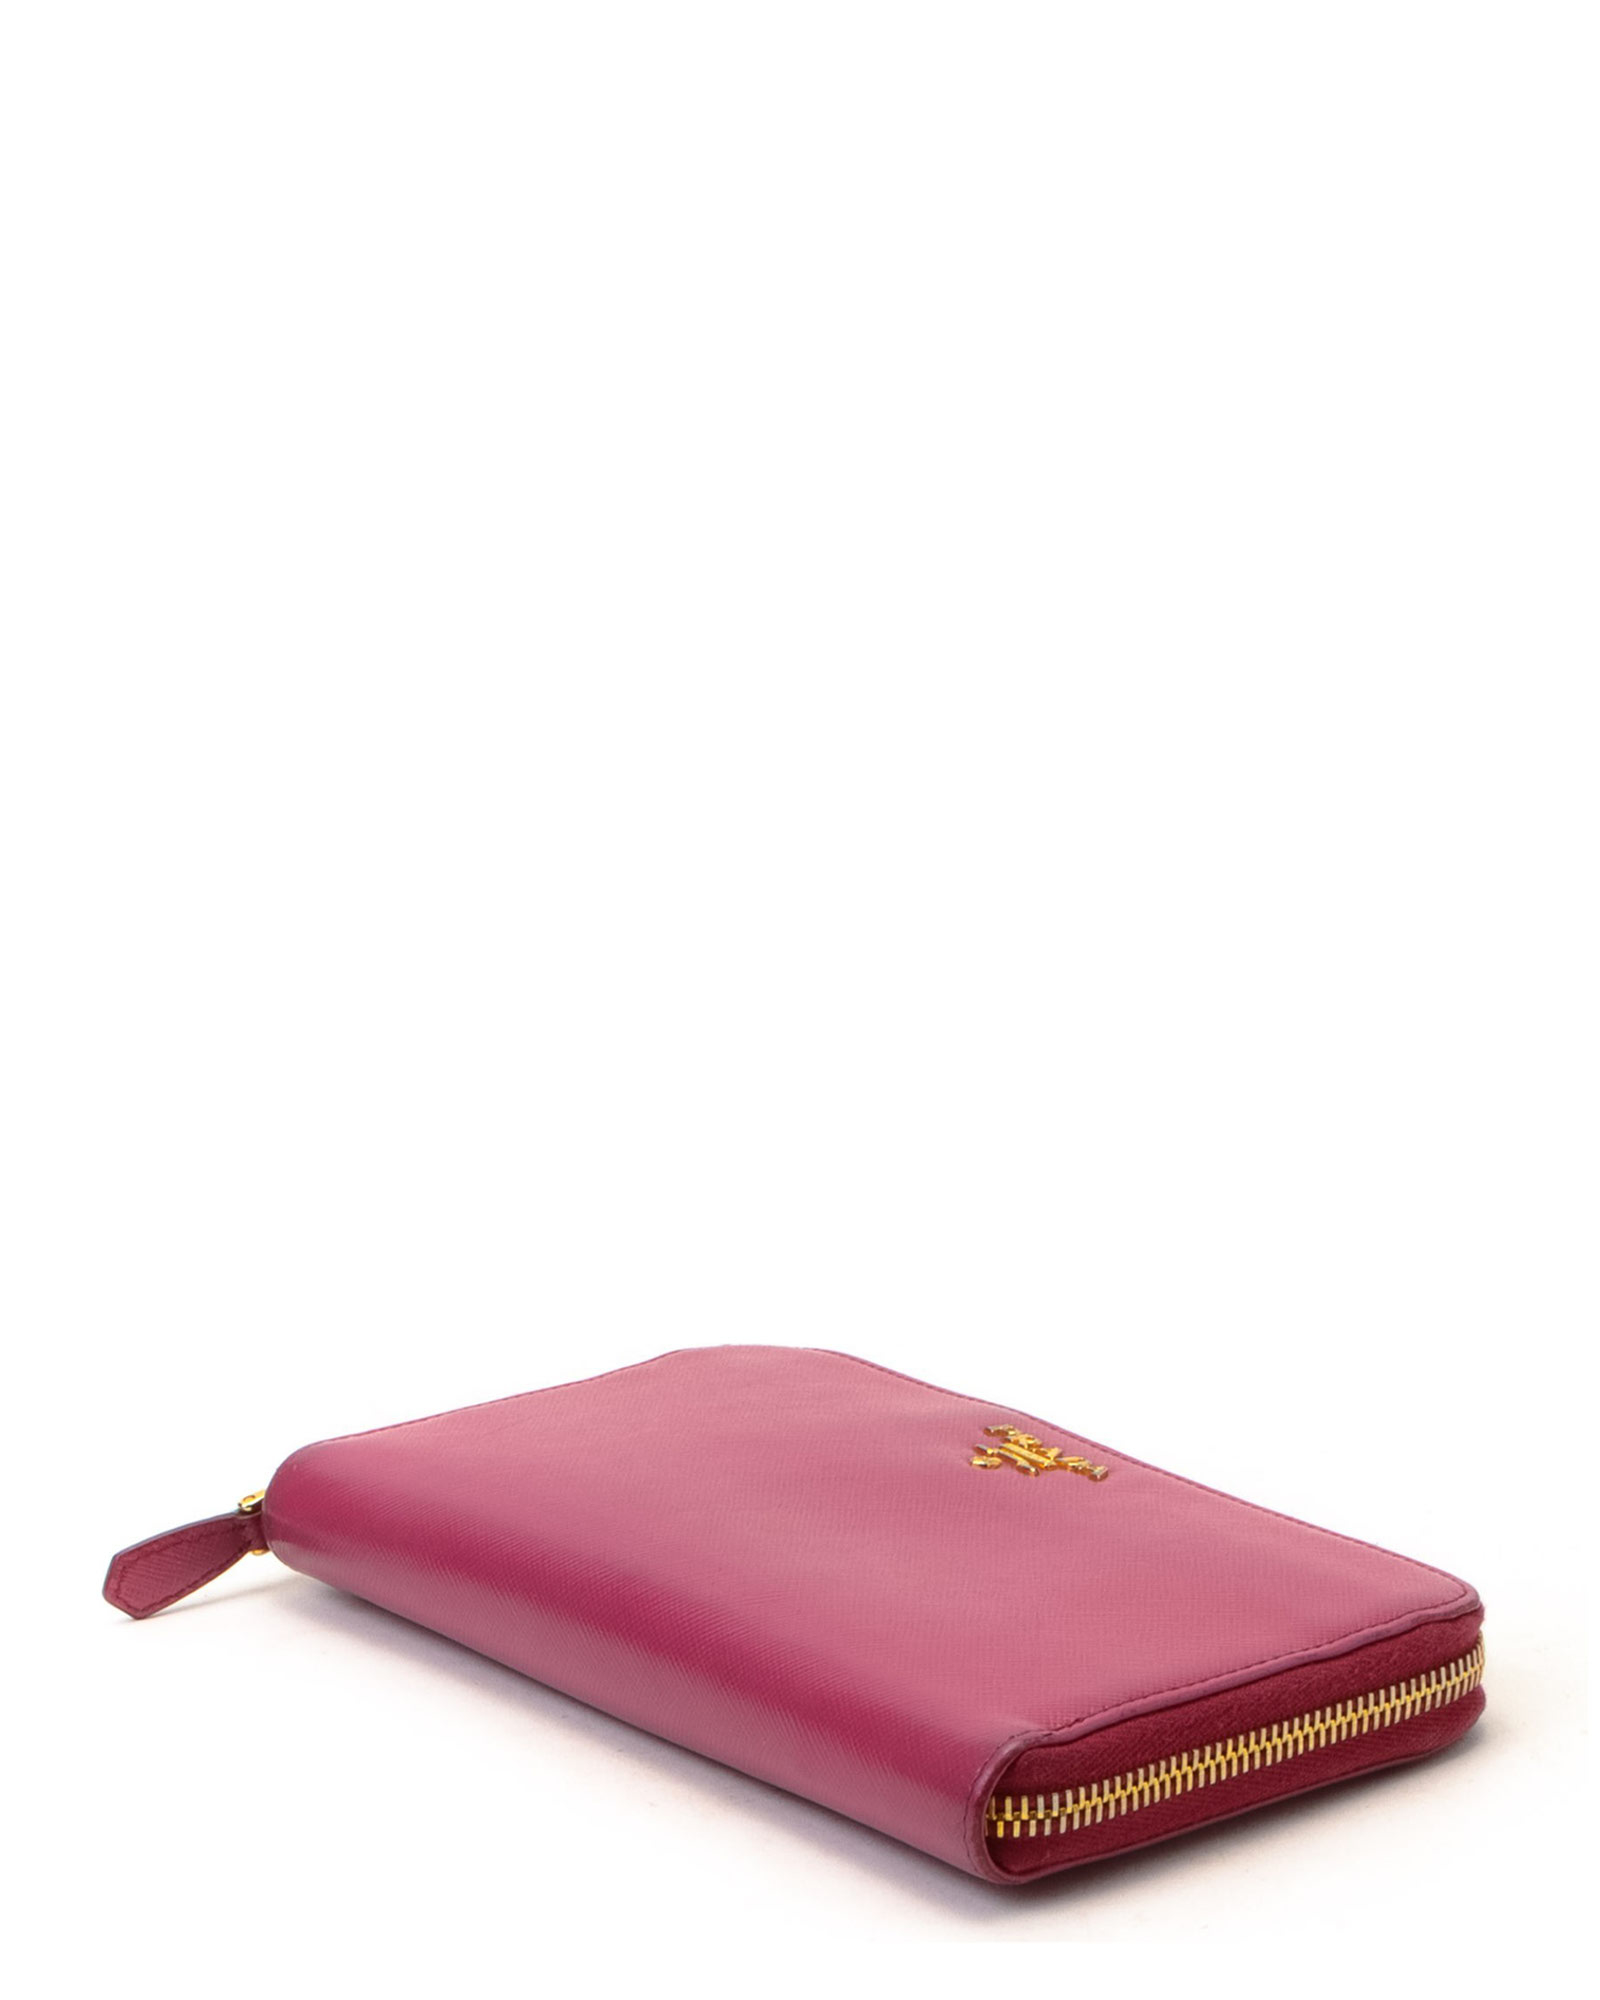 841329f5ce62f4 Prada Long Wallet Pink | Stanford Center for Opportunity Policy in ...